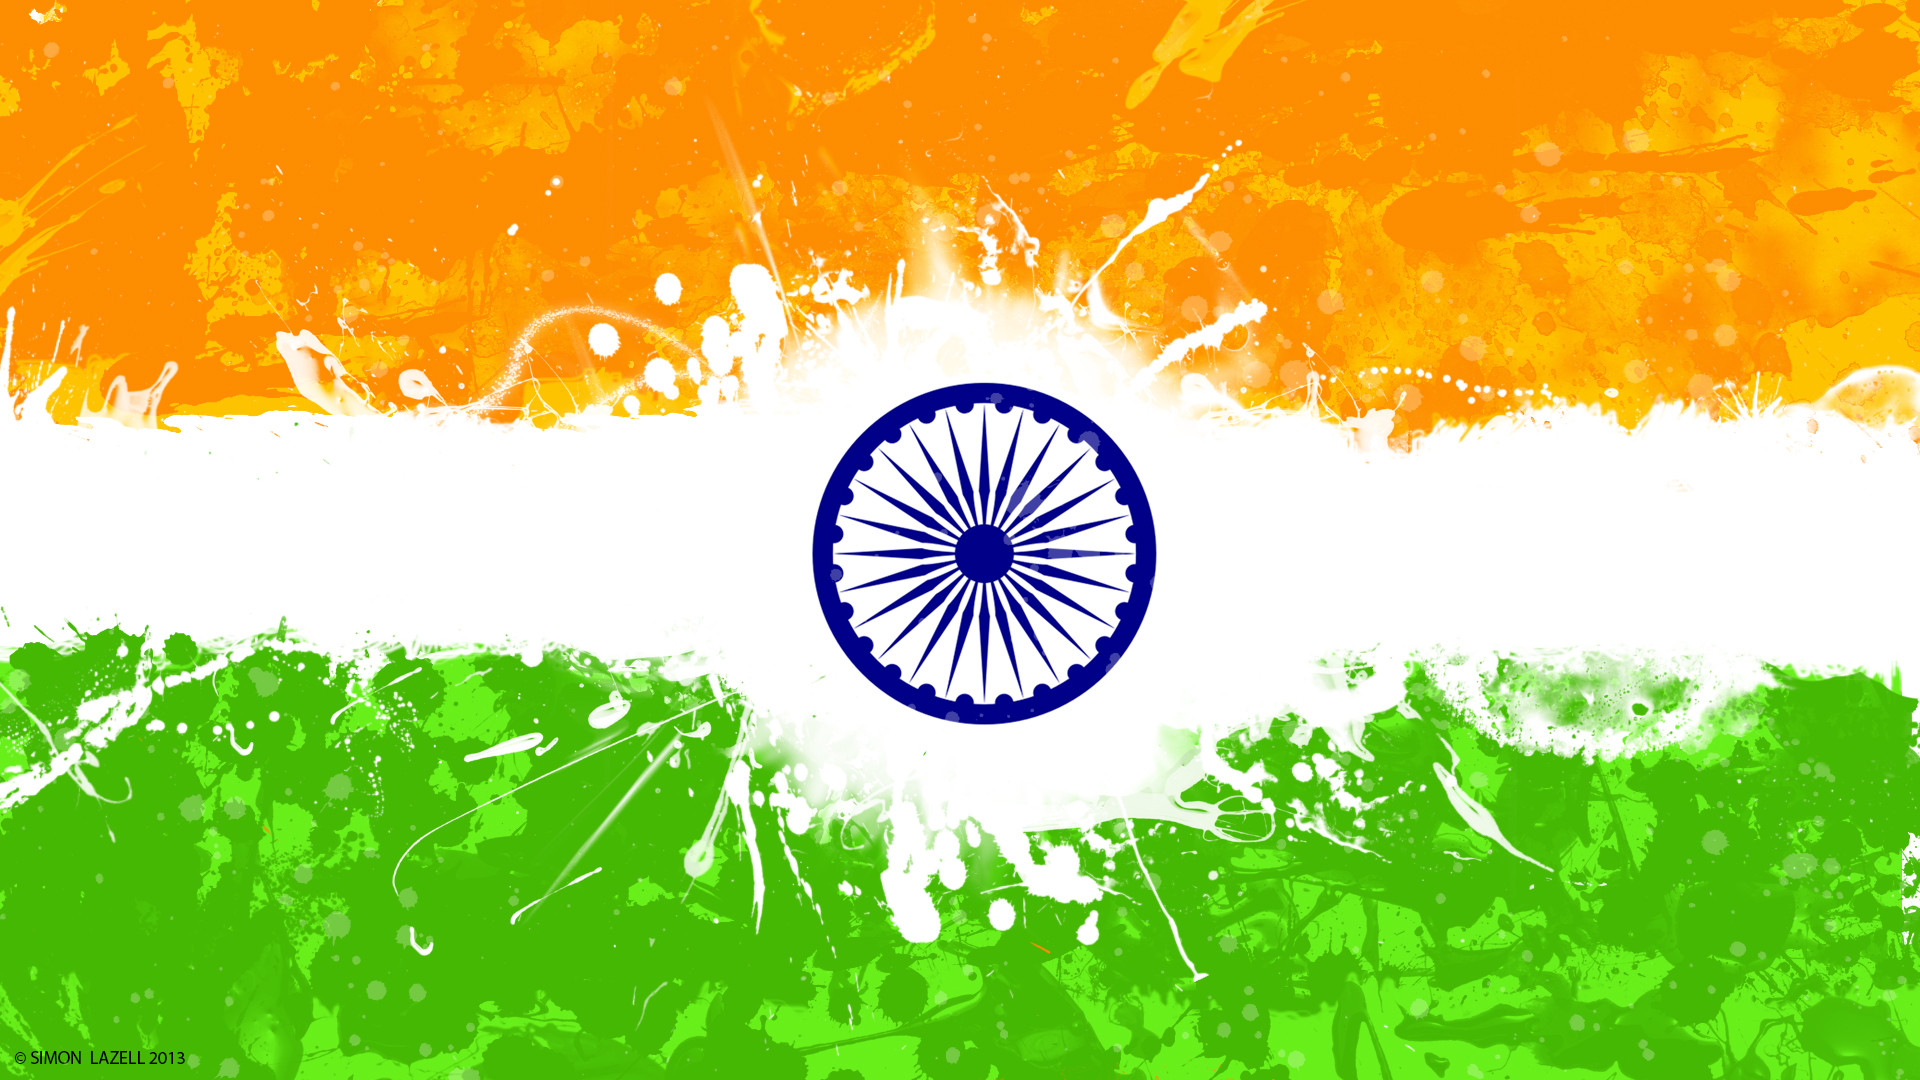 student congress resolution template - indian flag wallpapers hd images 2018 free download